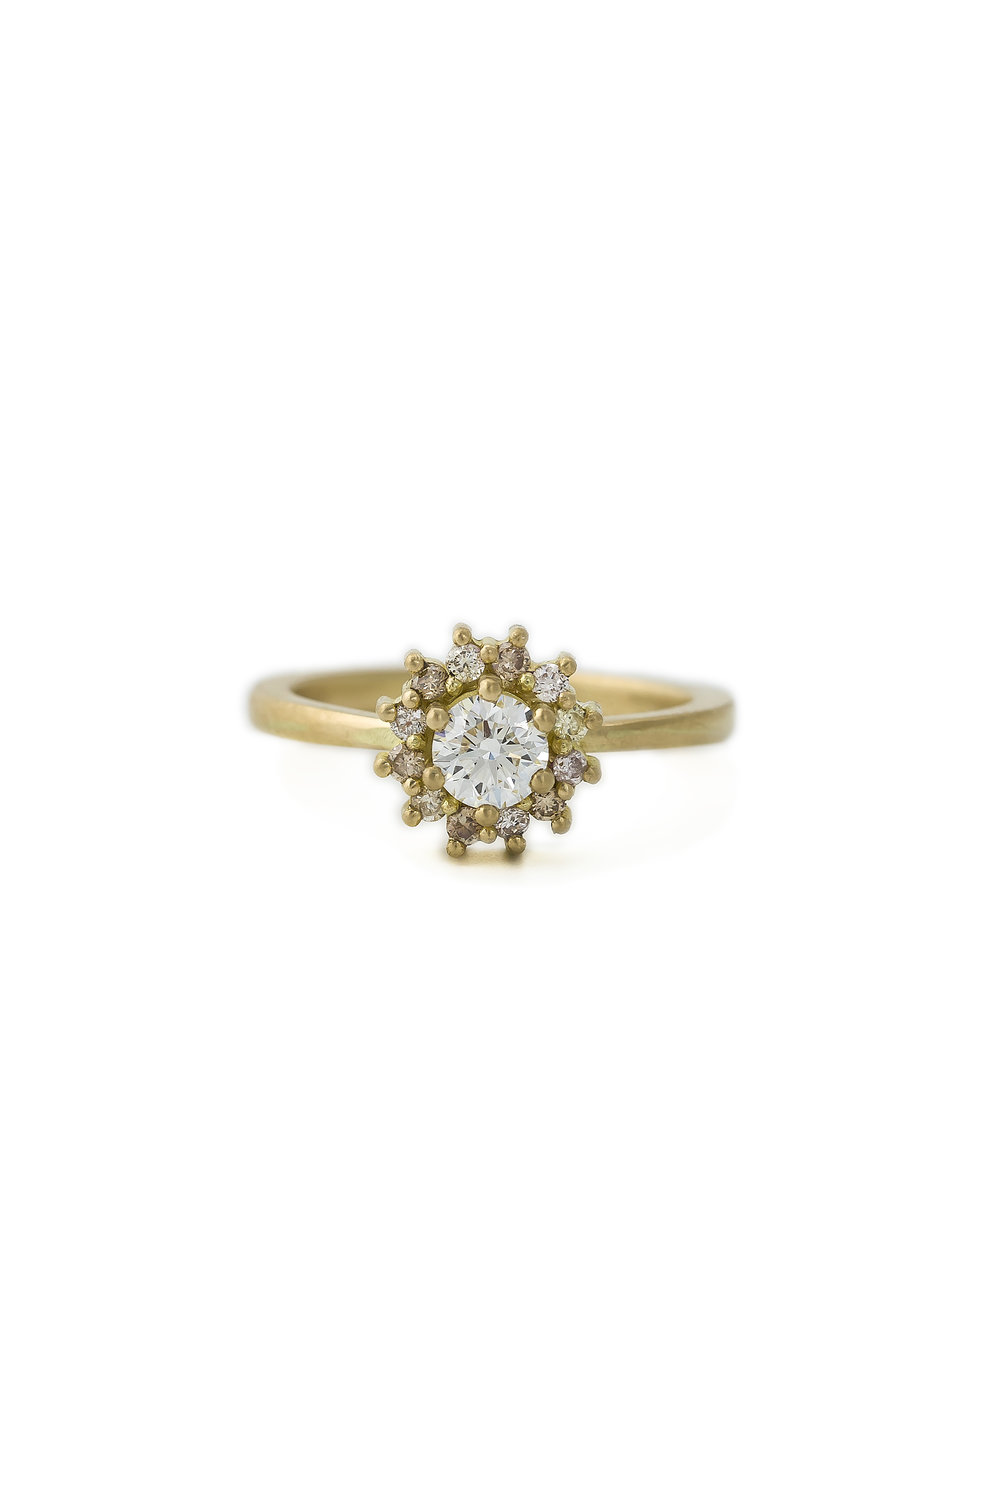 Multi coloured diamond halo ring in yellow gold